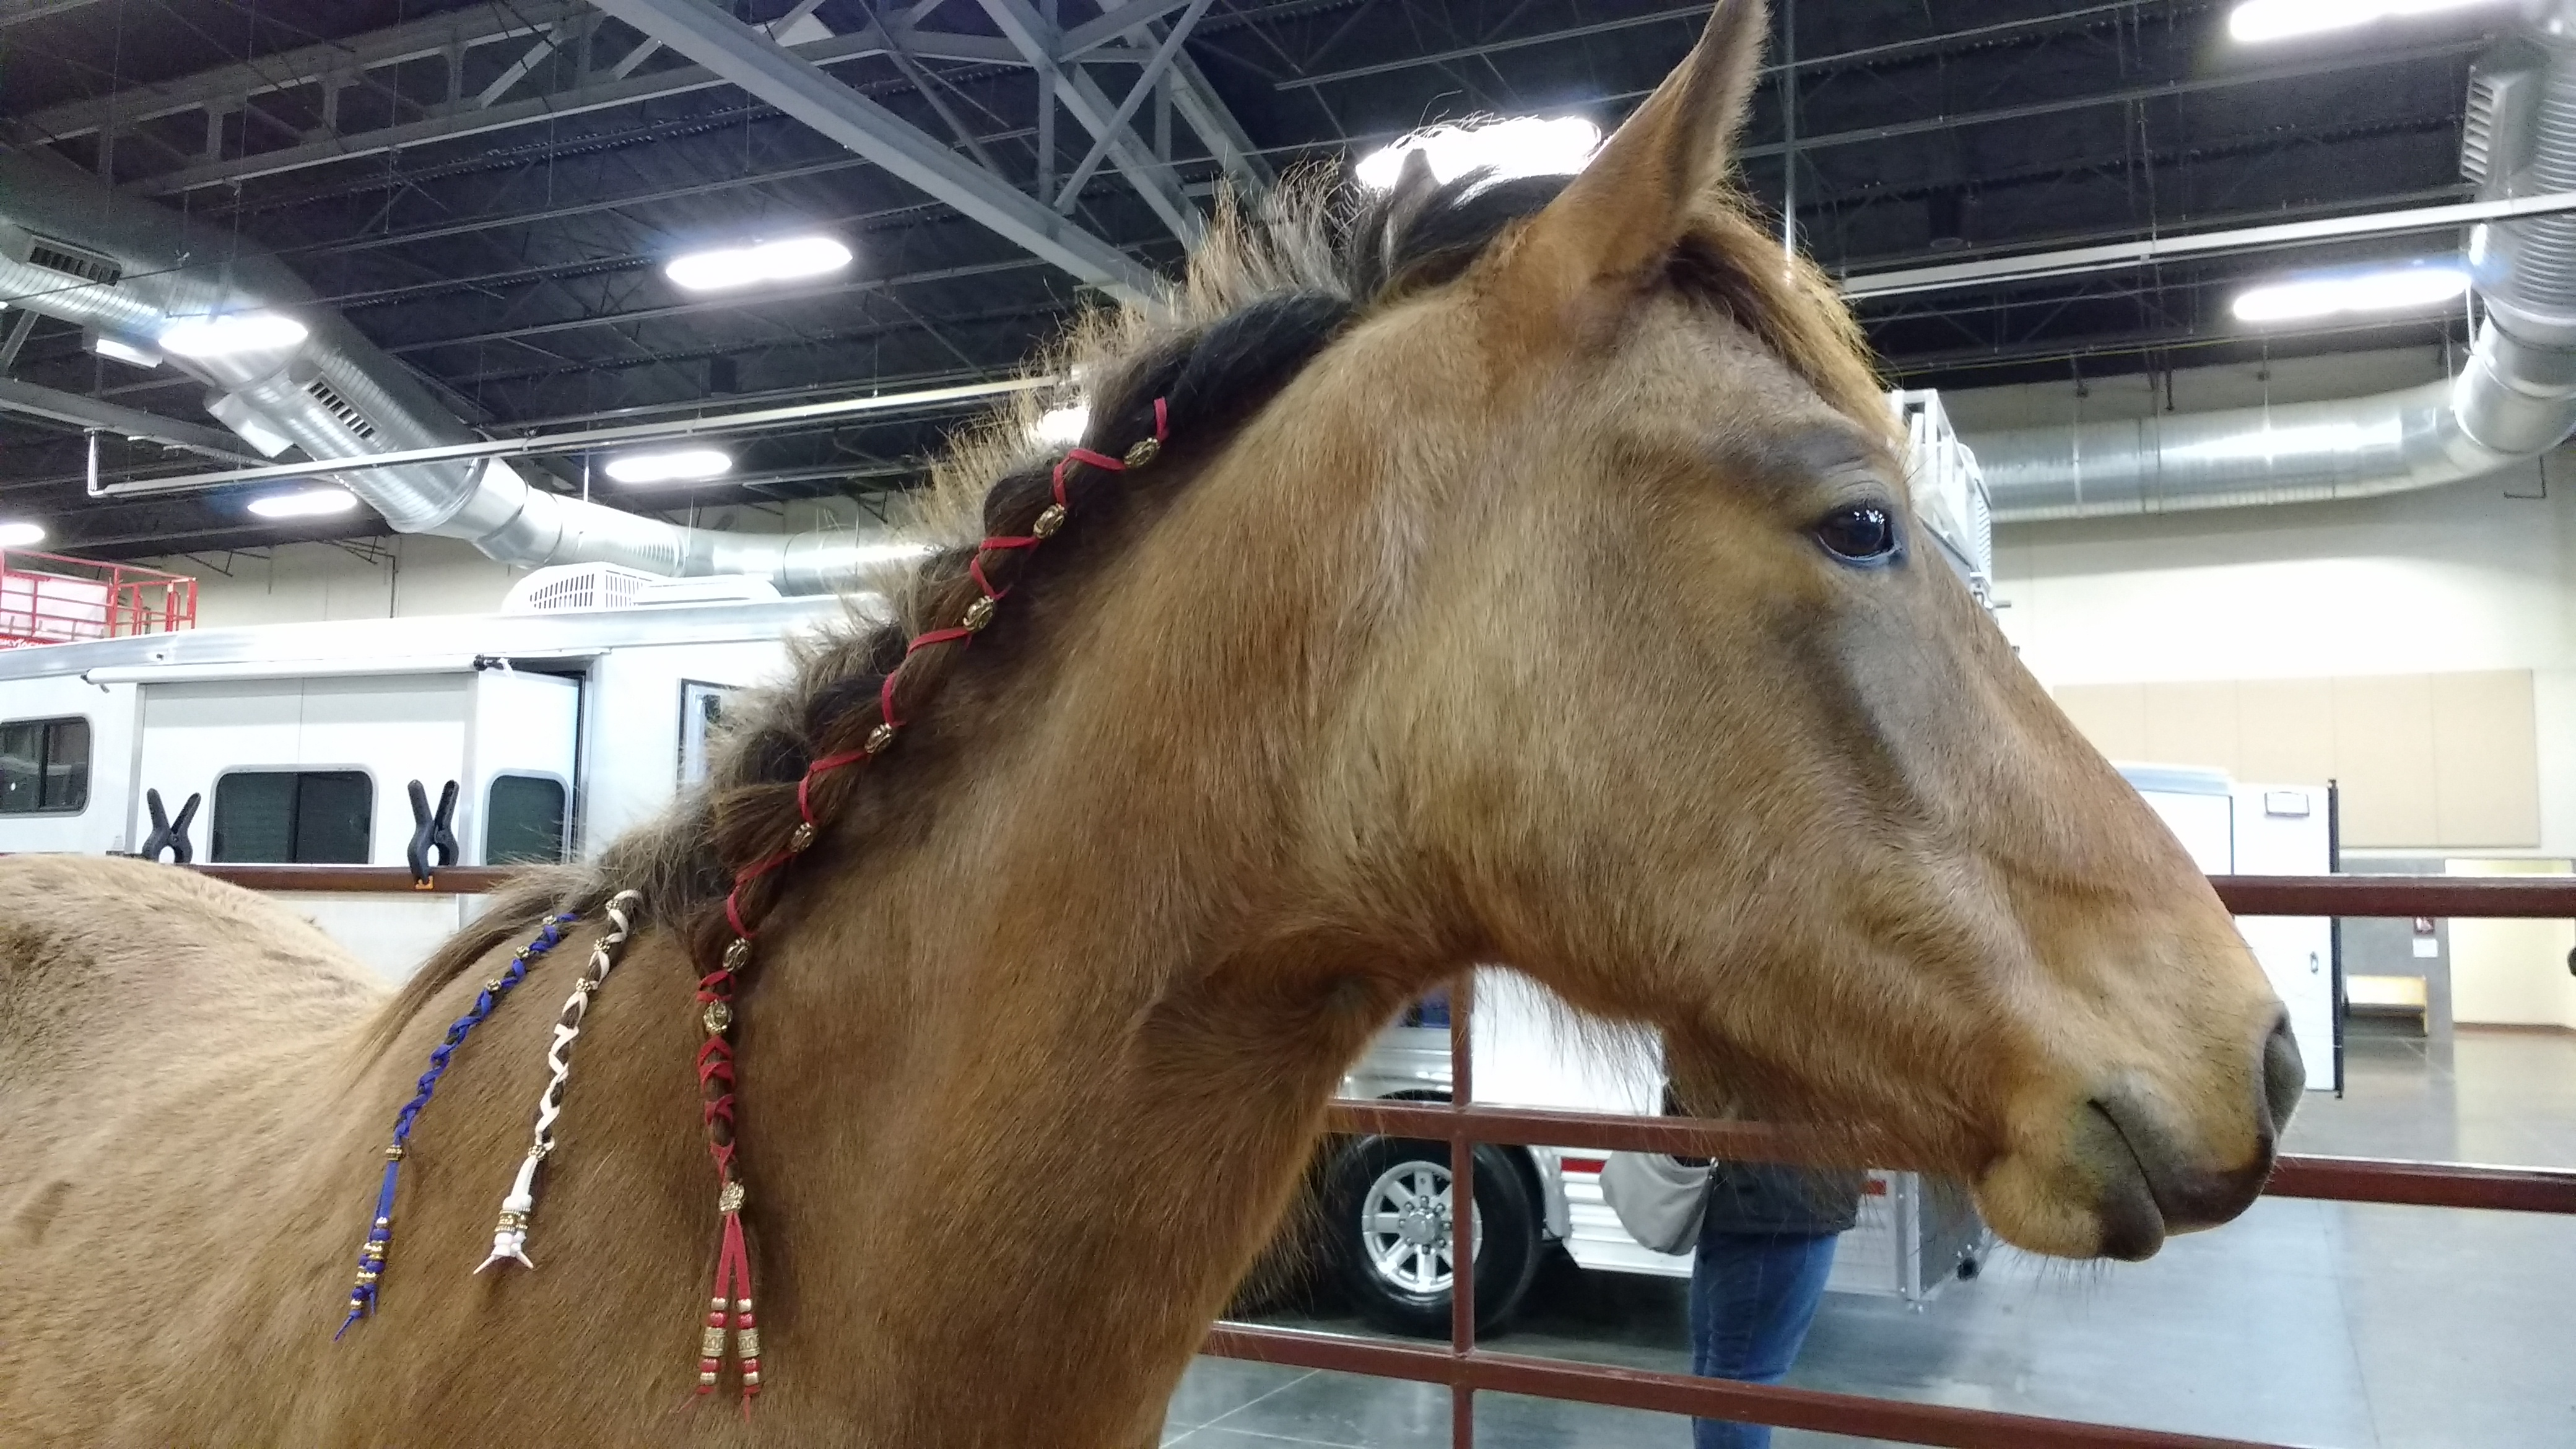 Dillon, a two year old Mustang, wearing our wraps.